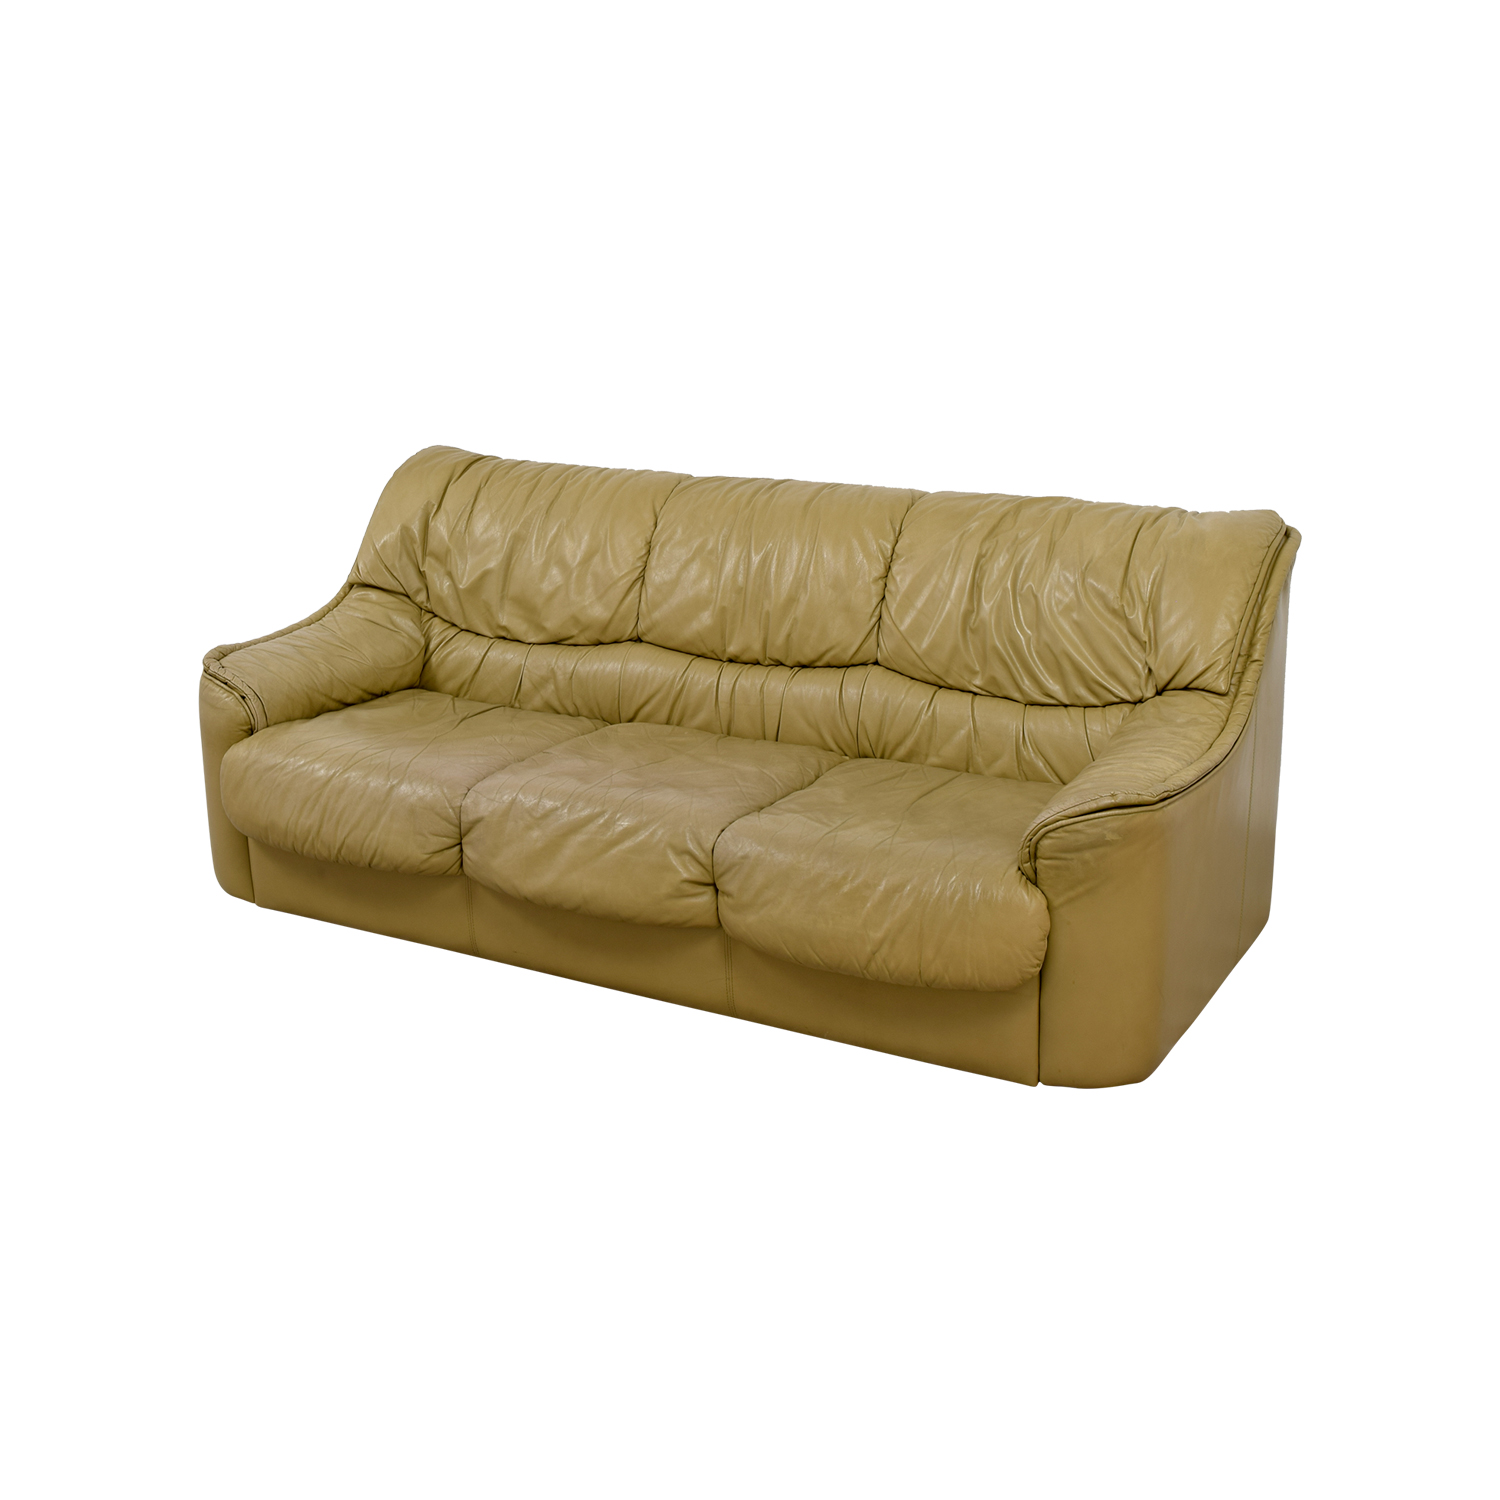 Beige Leather Sofa / Sofas